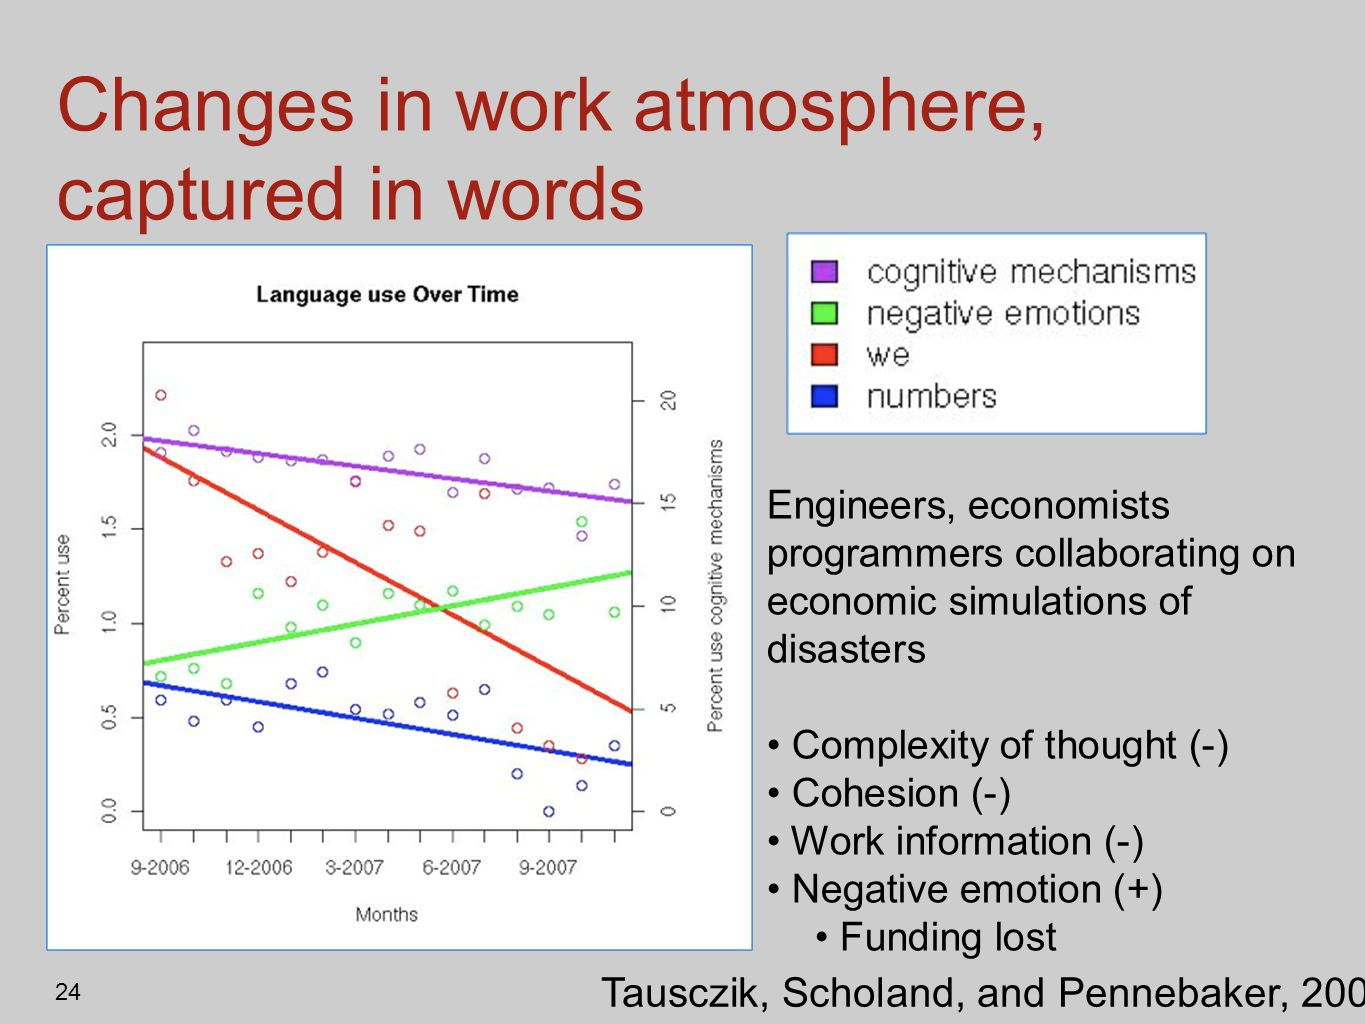 24 Changes in work atmosphere, captured in words Tausczik, Scholand, and Pennebaker, 2009 Engineers, economists programmers collaborating on economic